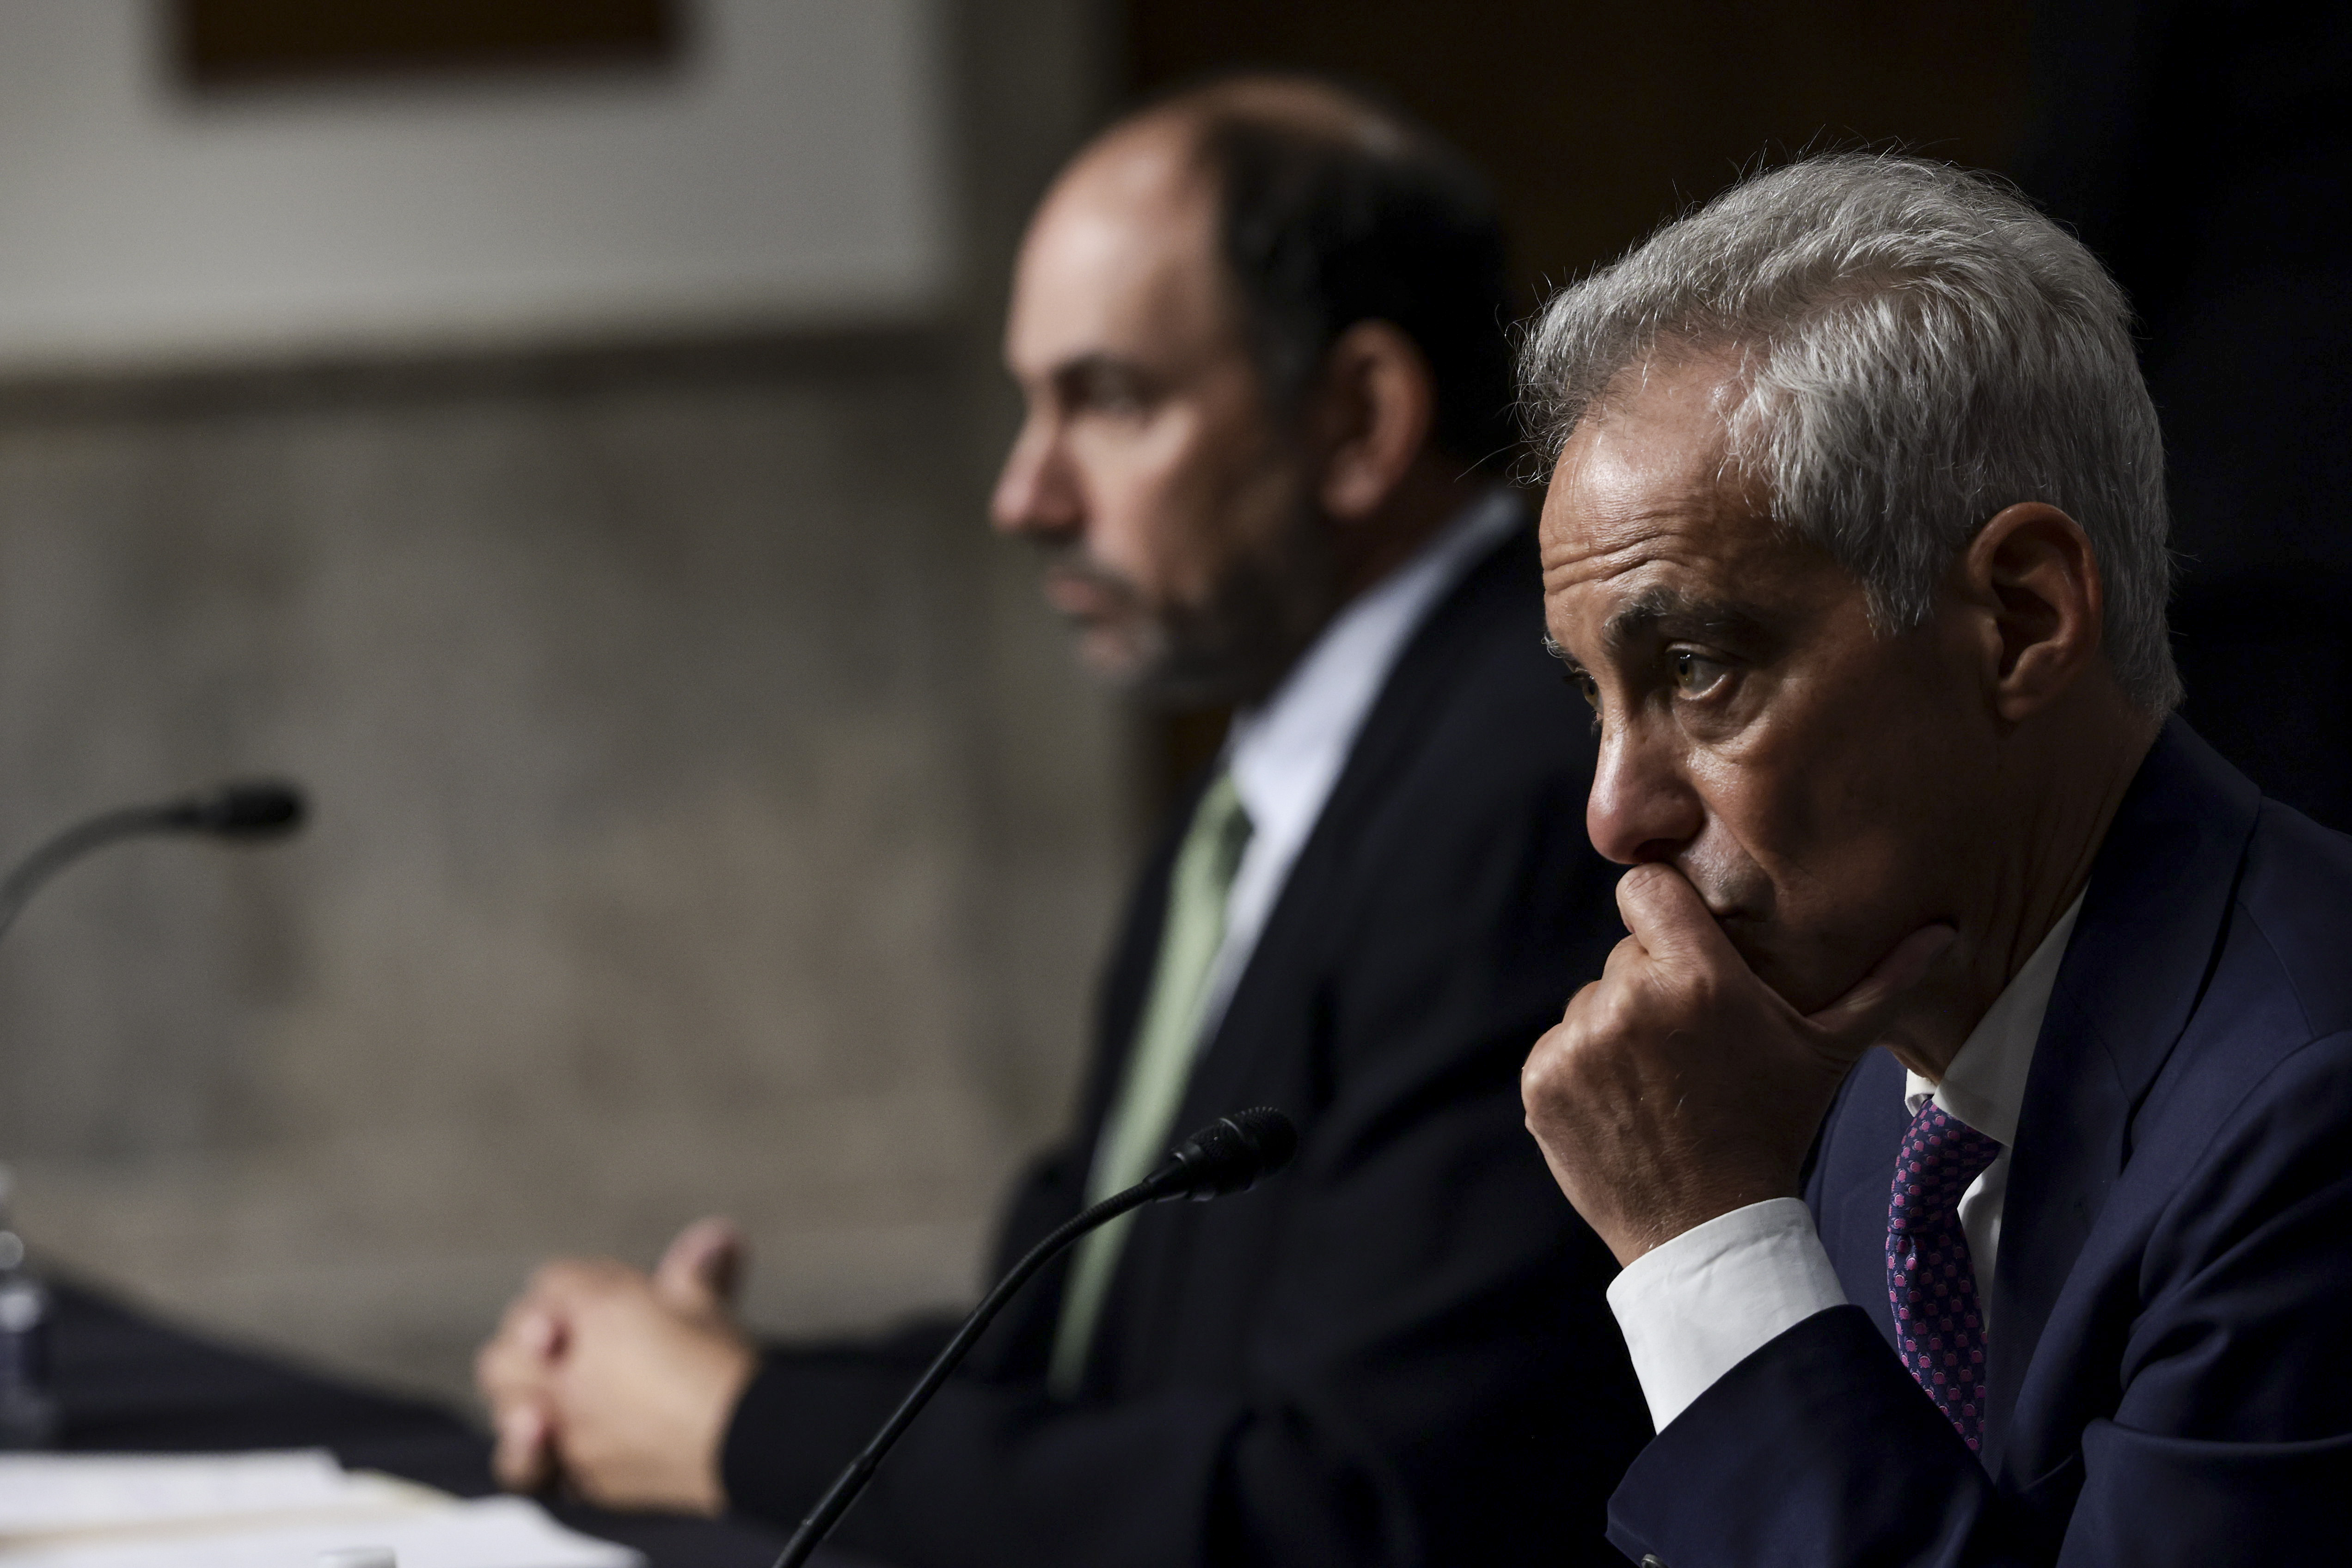 Rahm Emanuel, former Mayor of Chicago and former chief of staff in the Obama White House, listens during a confirmation hearing before Senate Foreign Relations Committee at Dirksen Senate Office Building on Capitol Hill October 20, 2021 in Washington, DC.